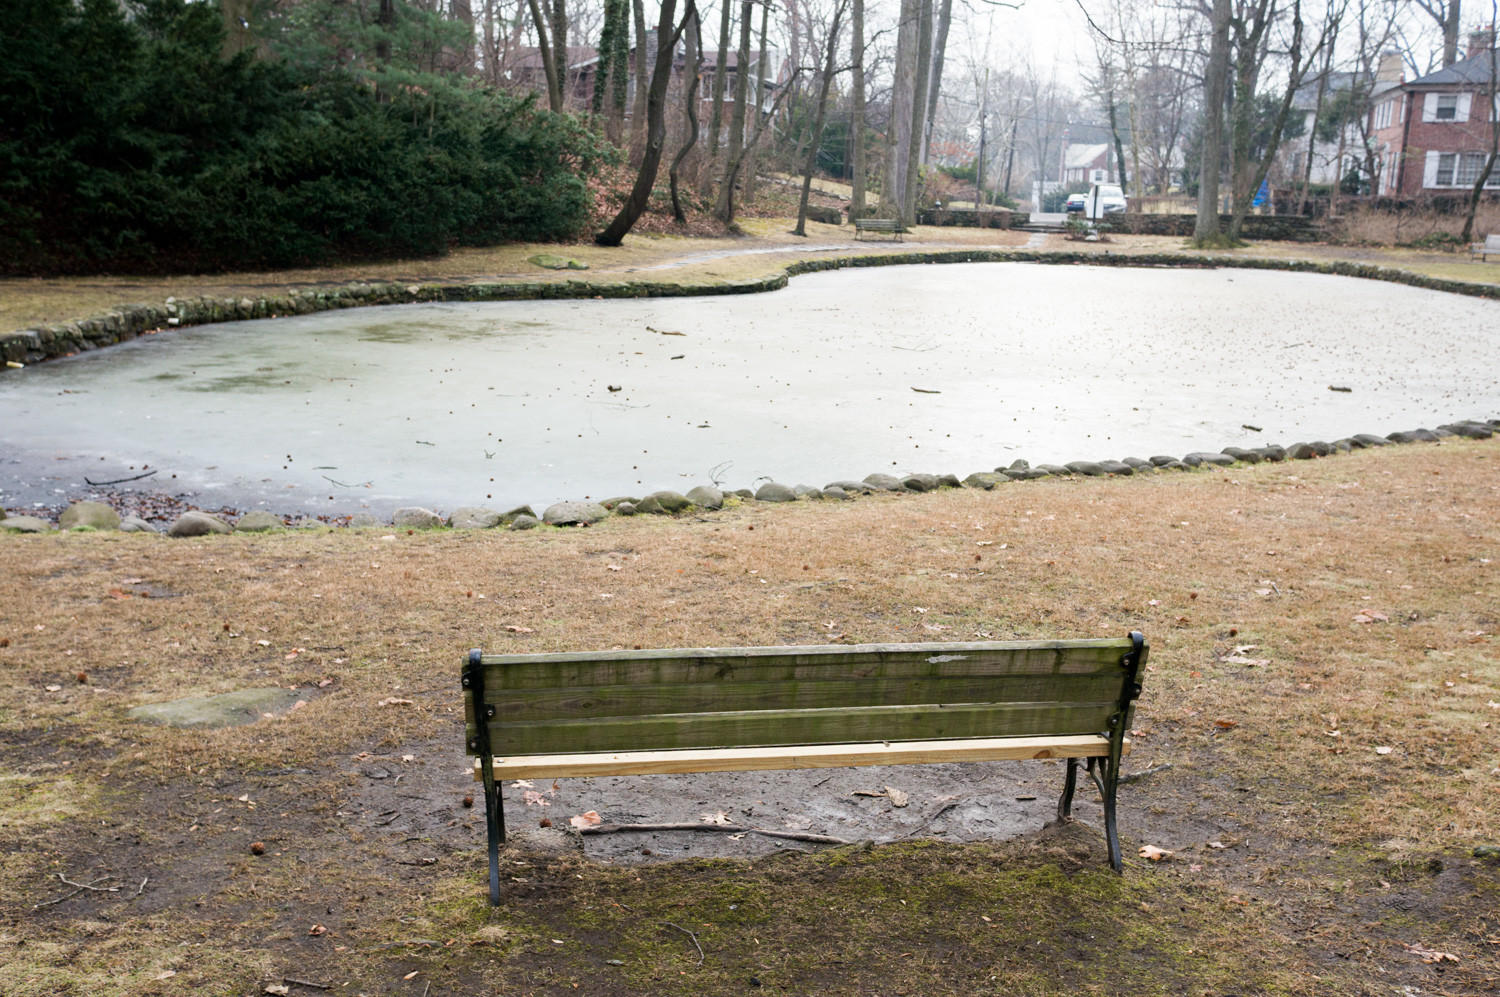 A controversial plan to develop 1.3 acres of land overlooking Indian Pond in Fieldston looks like it might be dead, as the property is up for sale.